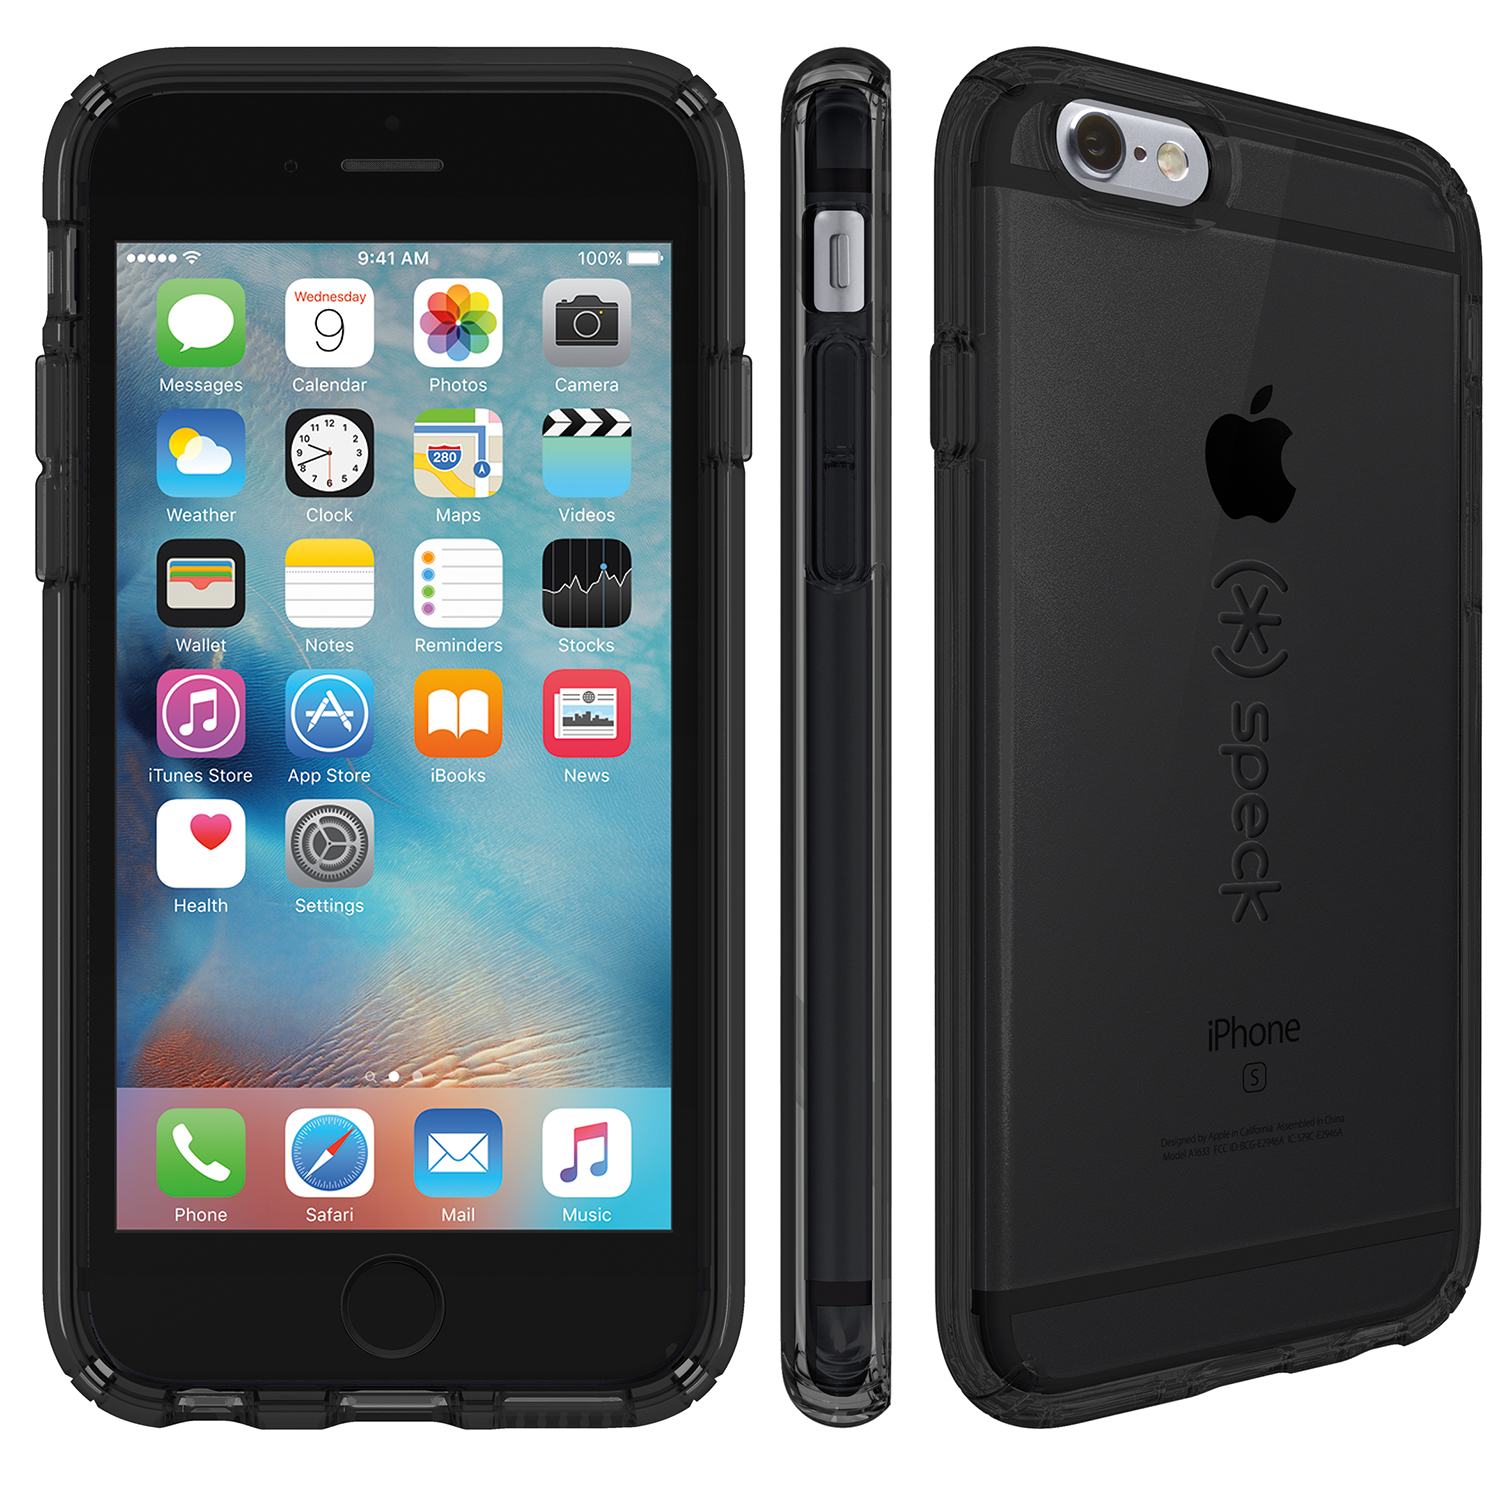 Compare prices for Speck CandyShell Clear iPhone 6s Plus and iPhone 6 Plus Cases Onyx Black